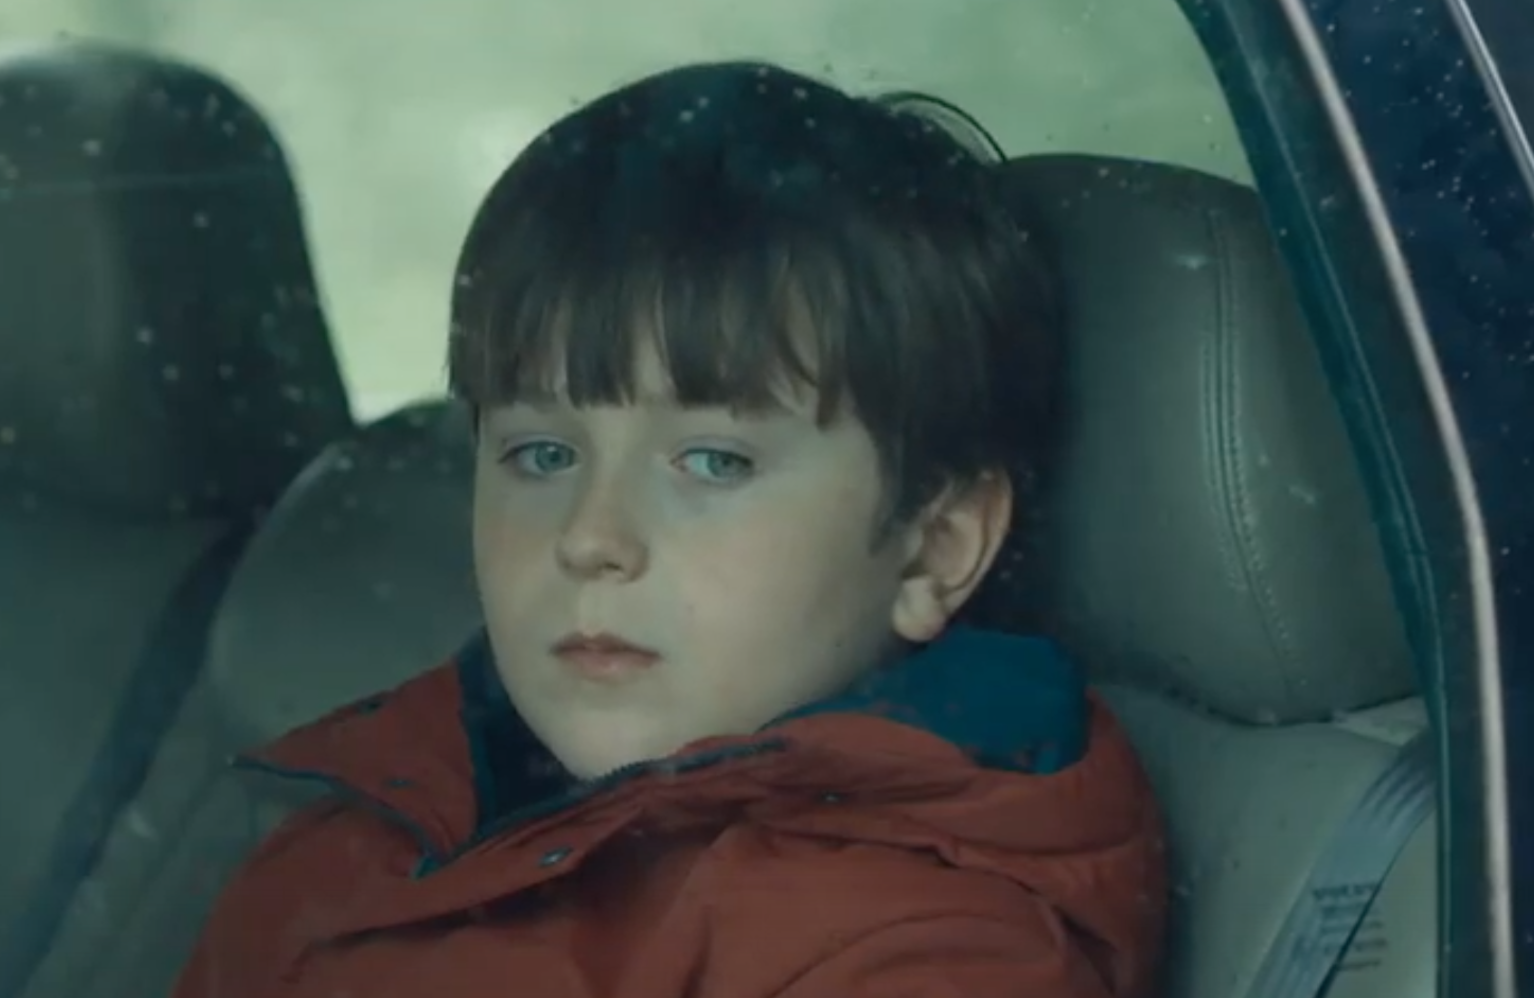 Does Max Vento have autism in real life? The A Word star plays Joe Hughes in the hit BBC drama